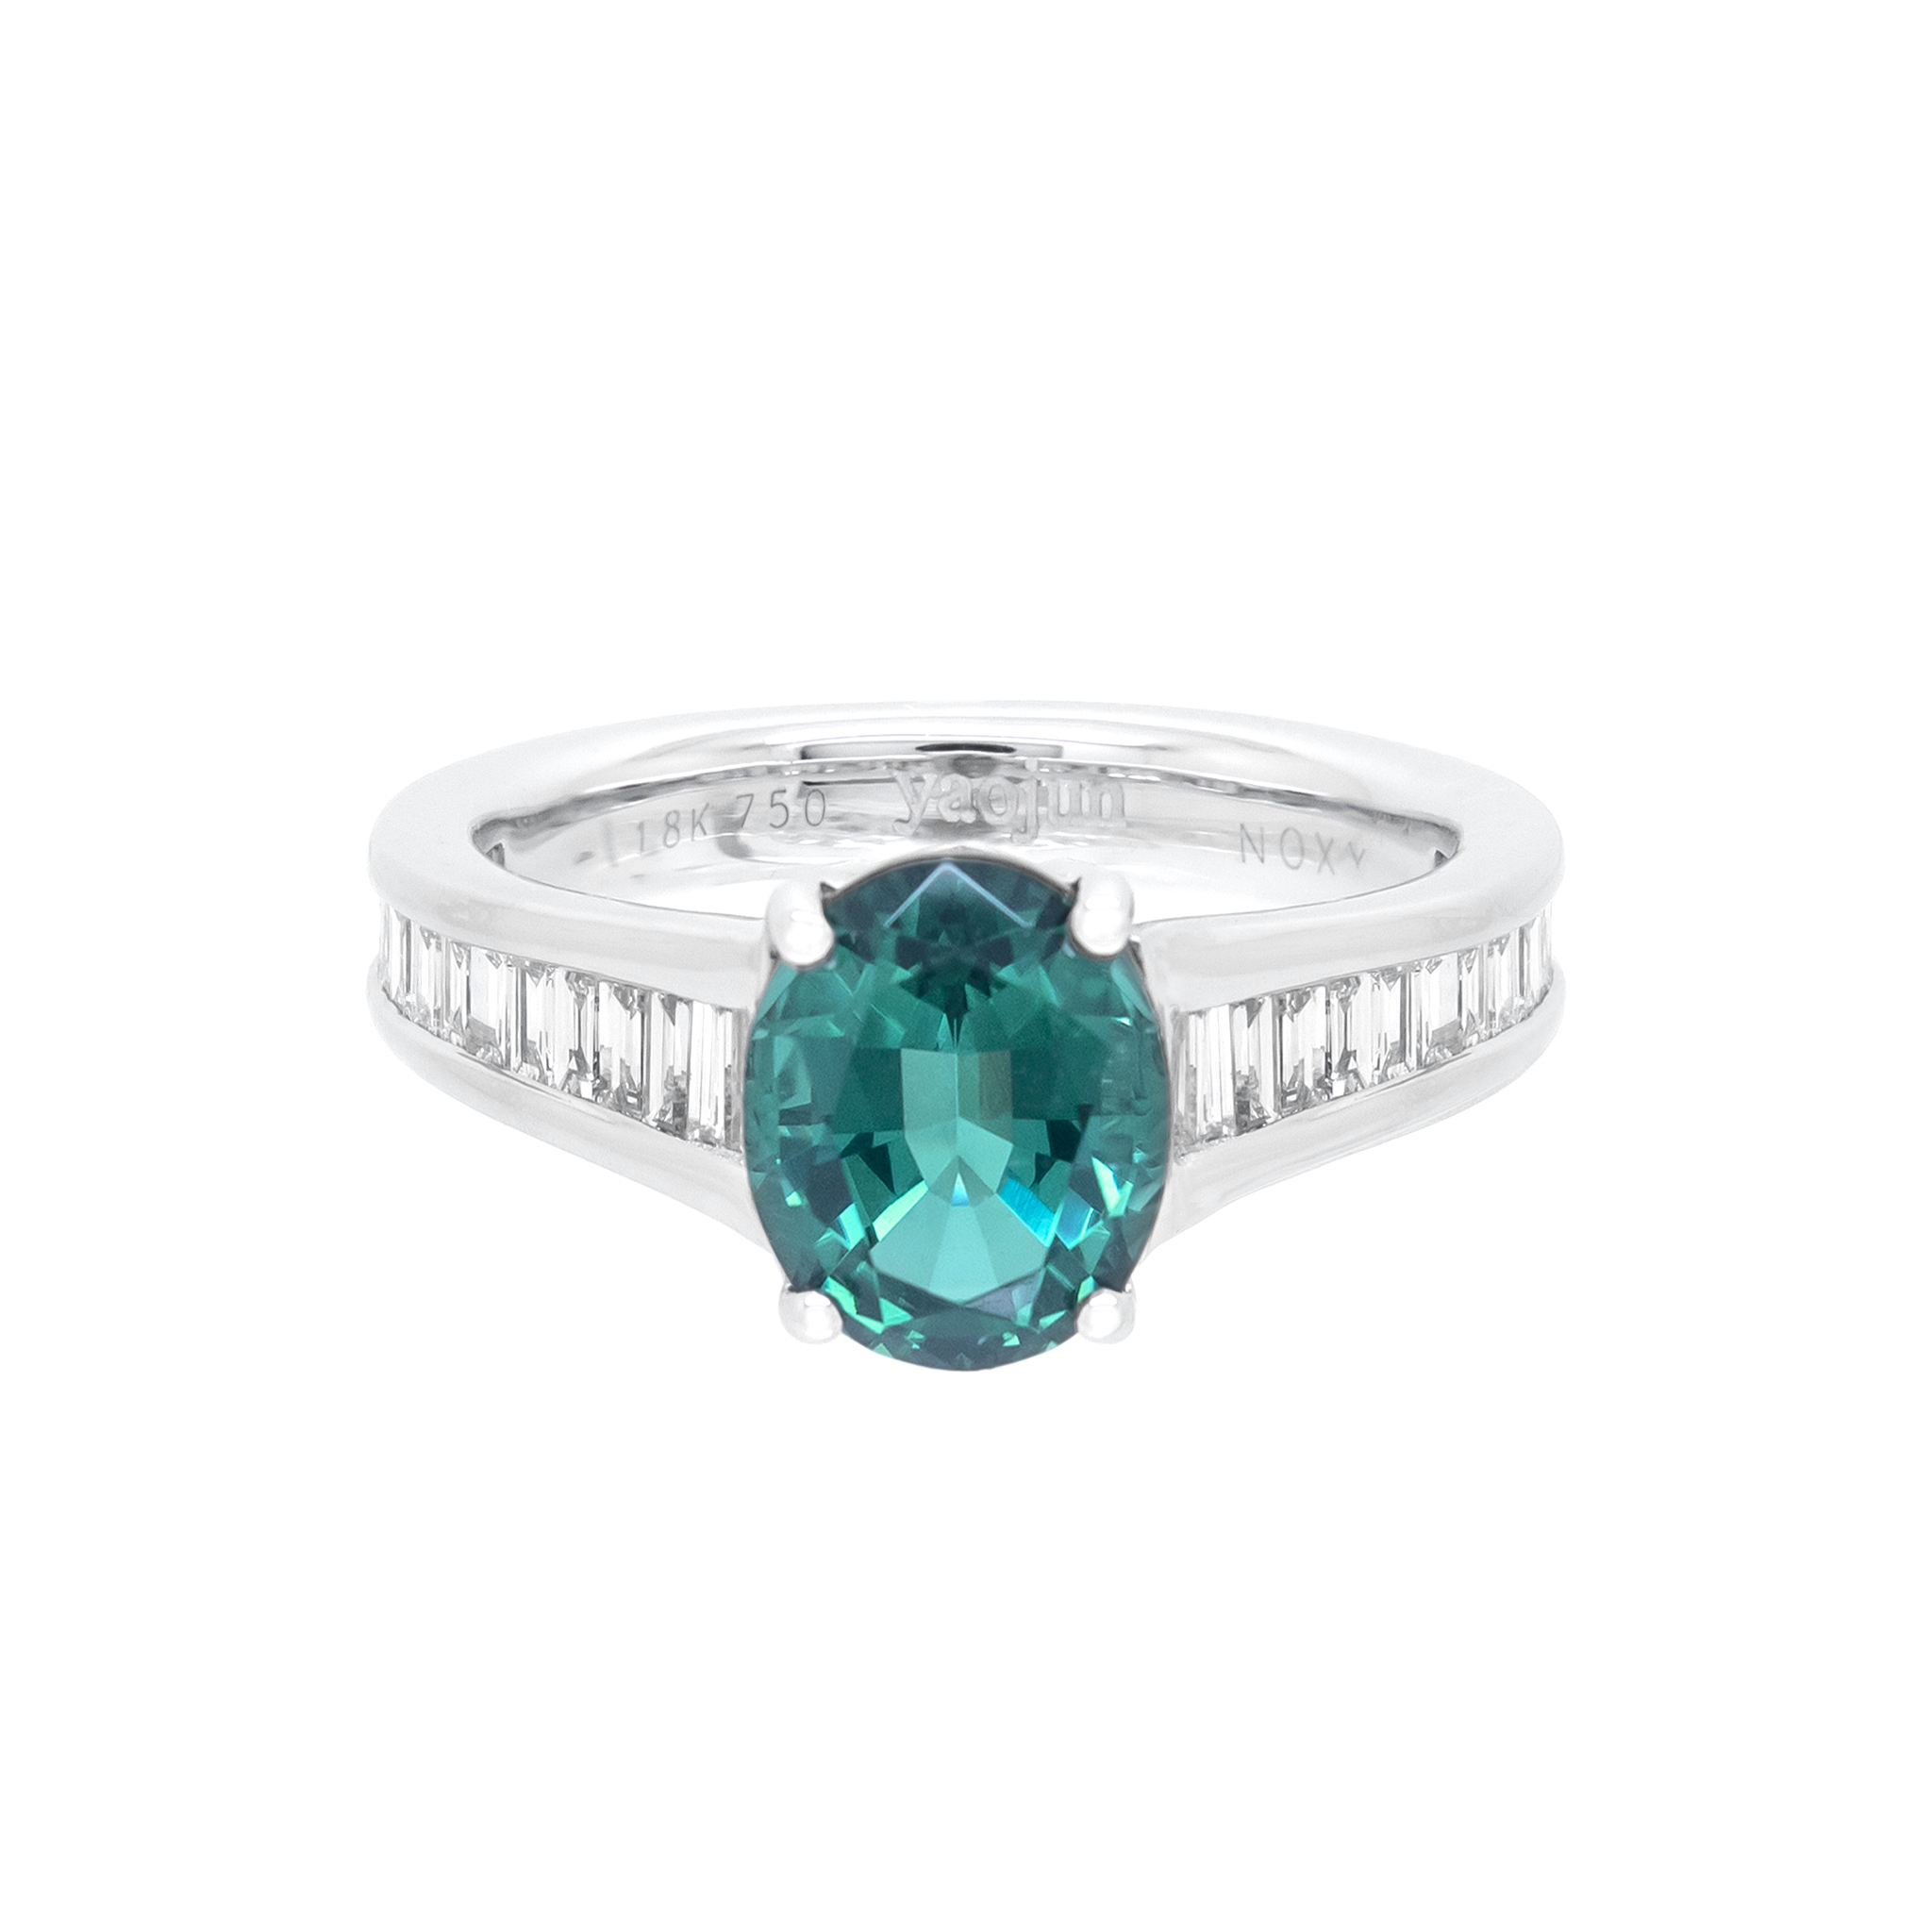 Blue-Green Tourmaline Engagement Ring